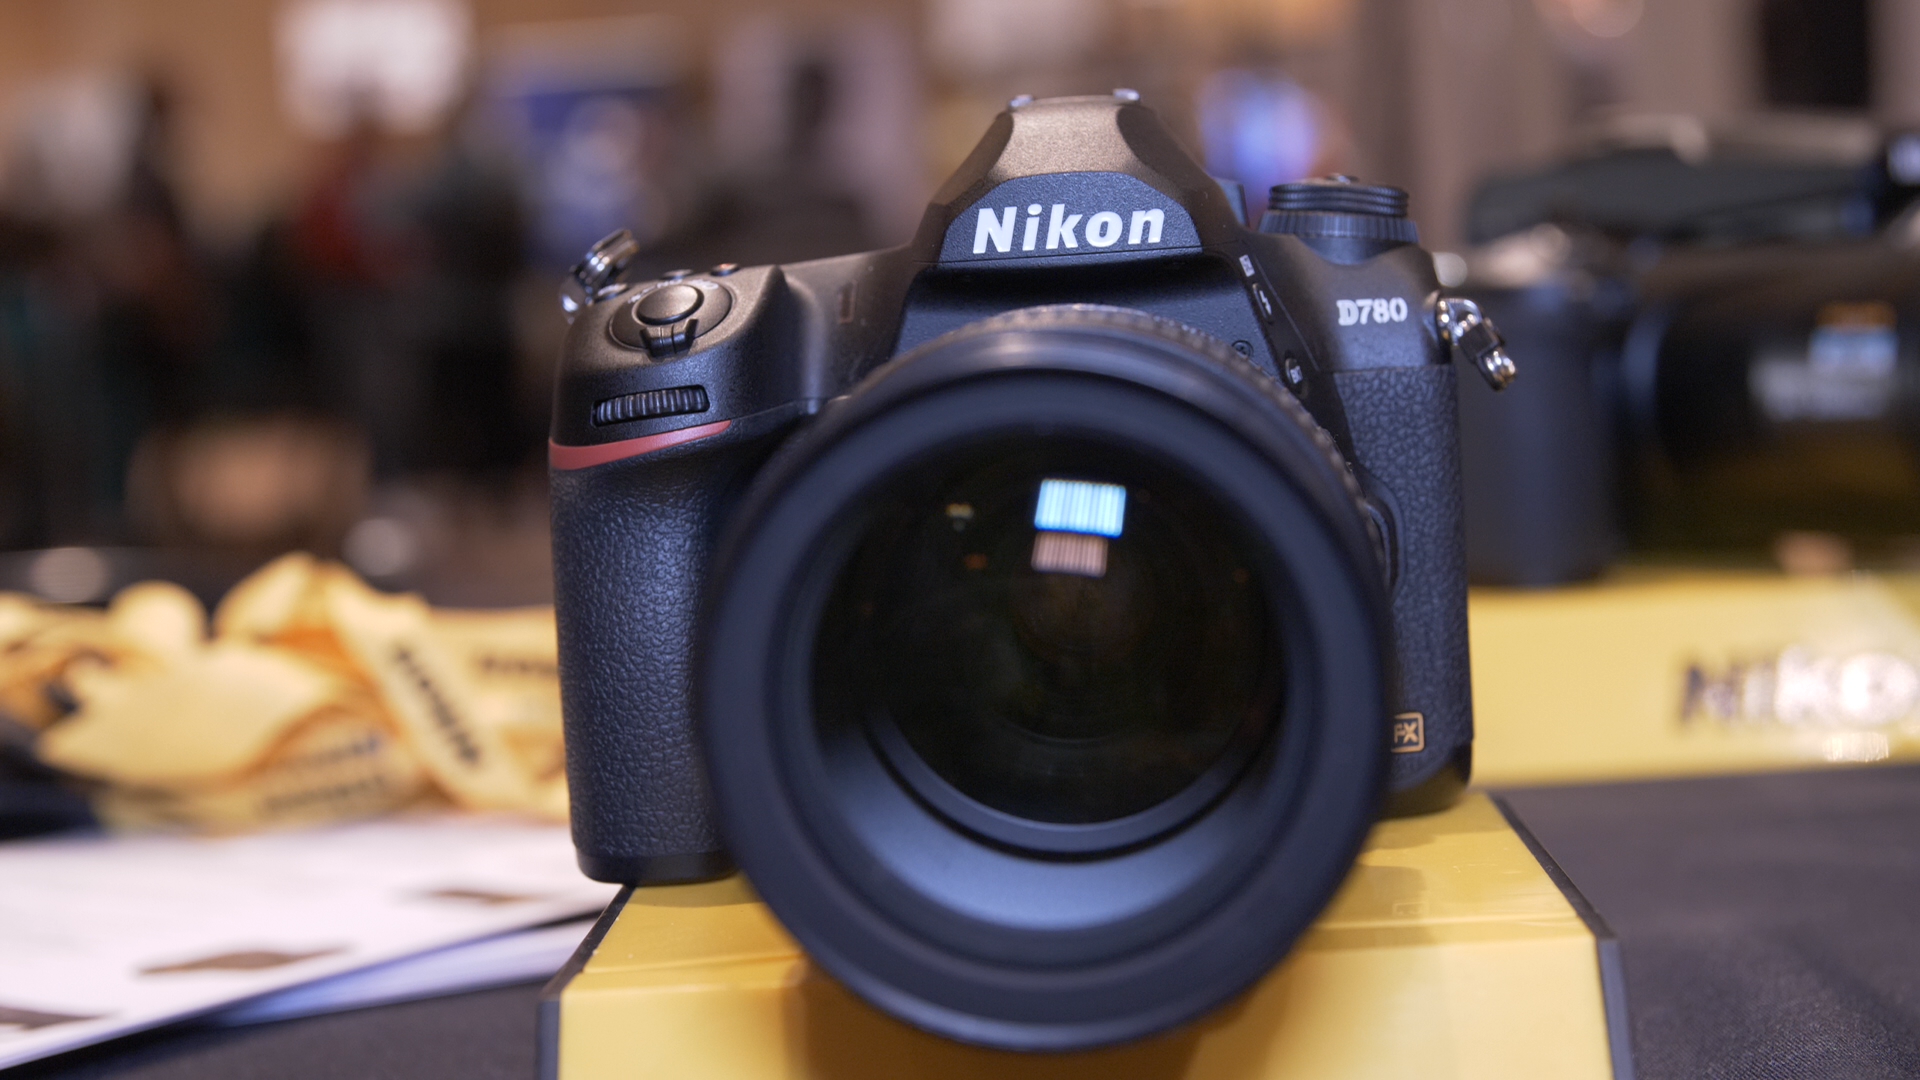 Video: First look: Nikon 780 packs mirrorless features into a DSLR body